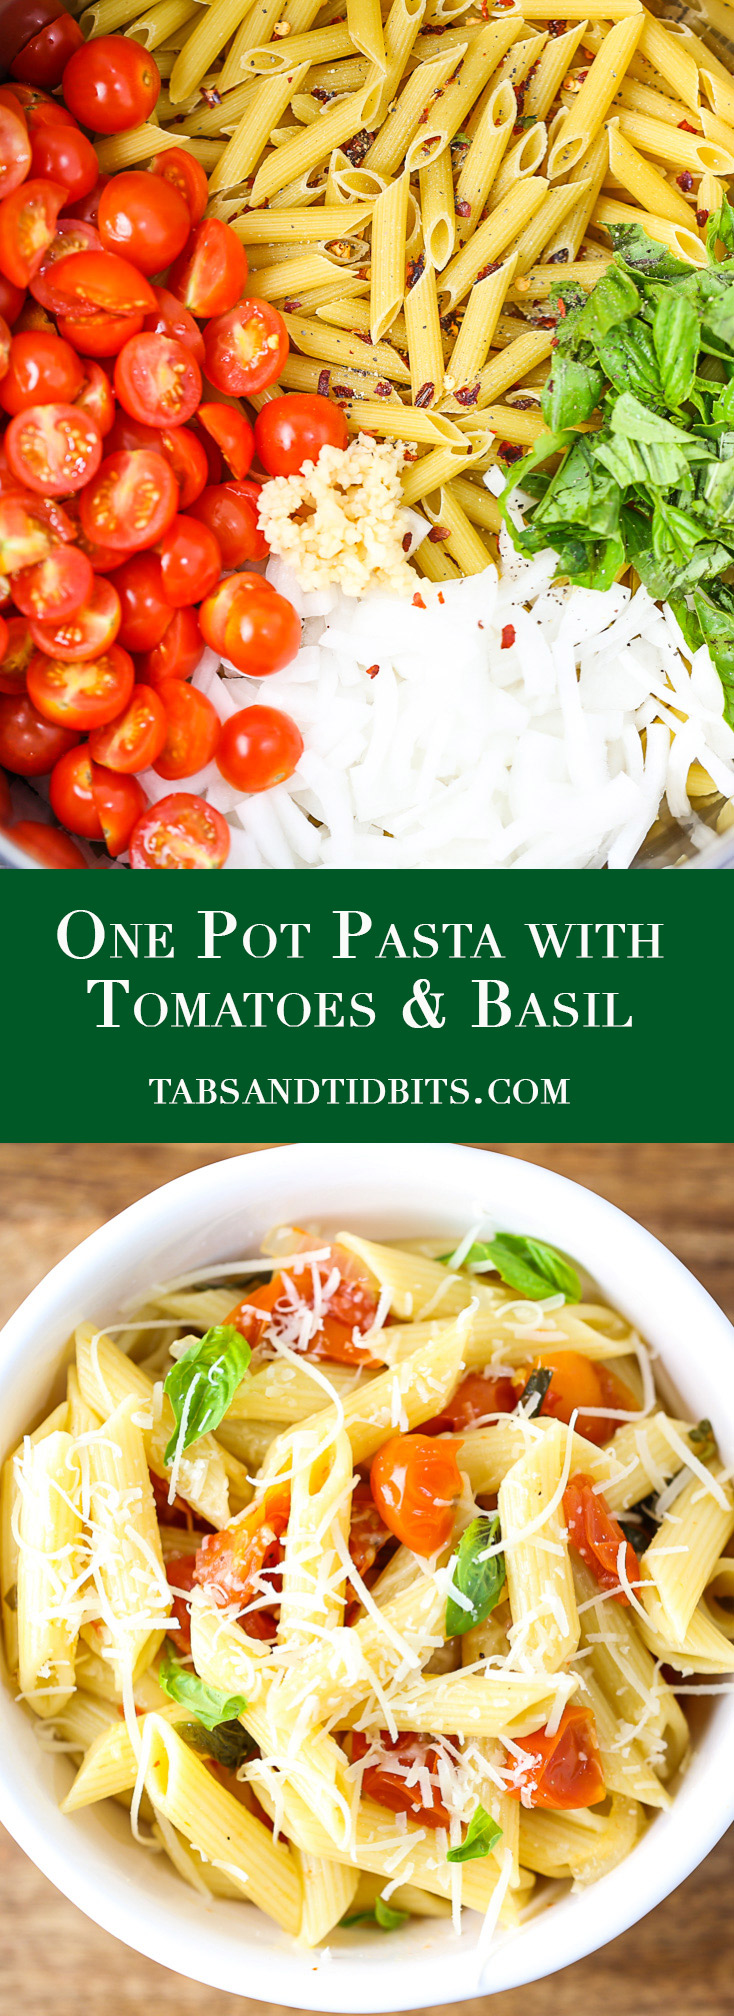 One Pot Pasta with Tomatoes & Basil - A quick and easy dish that cooks the pasta and creates a delicious sauce in one pot!